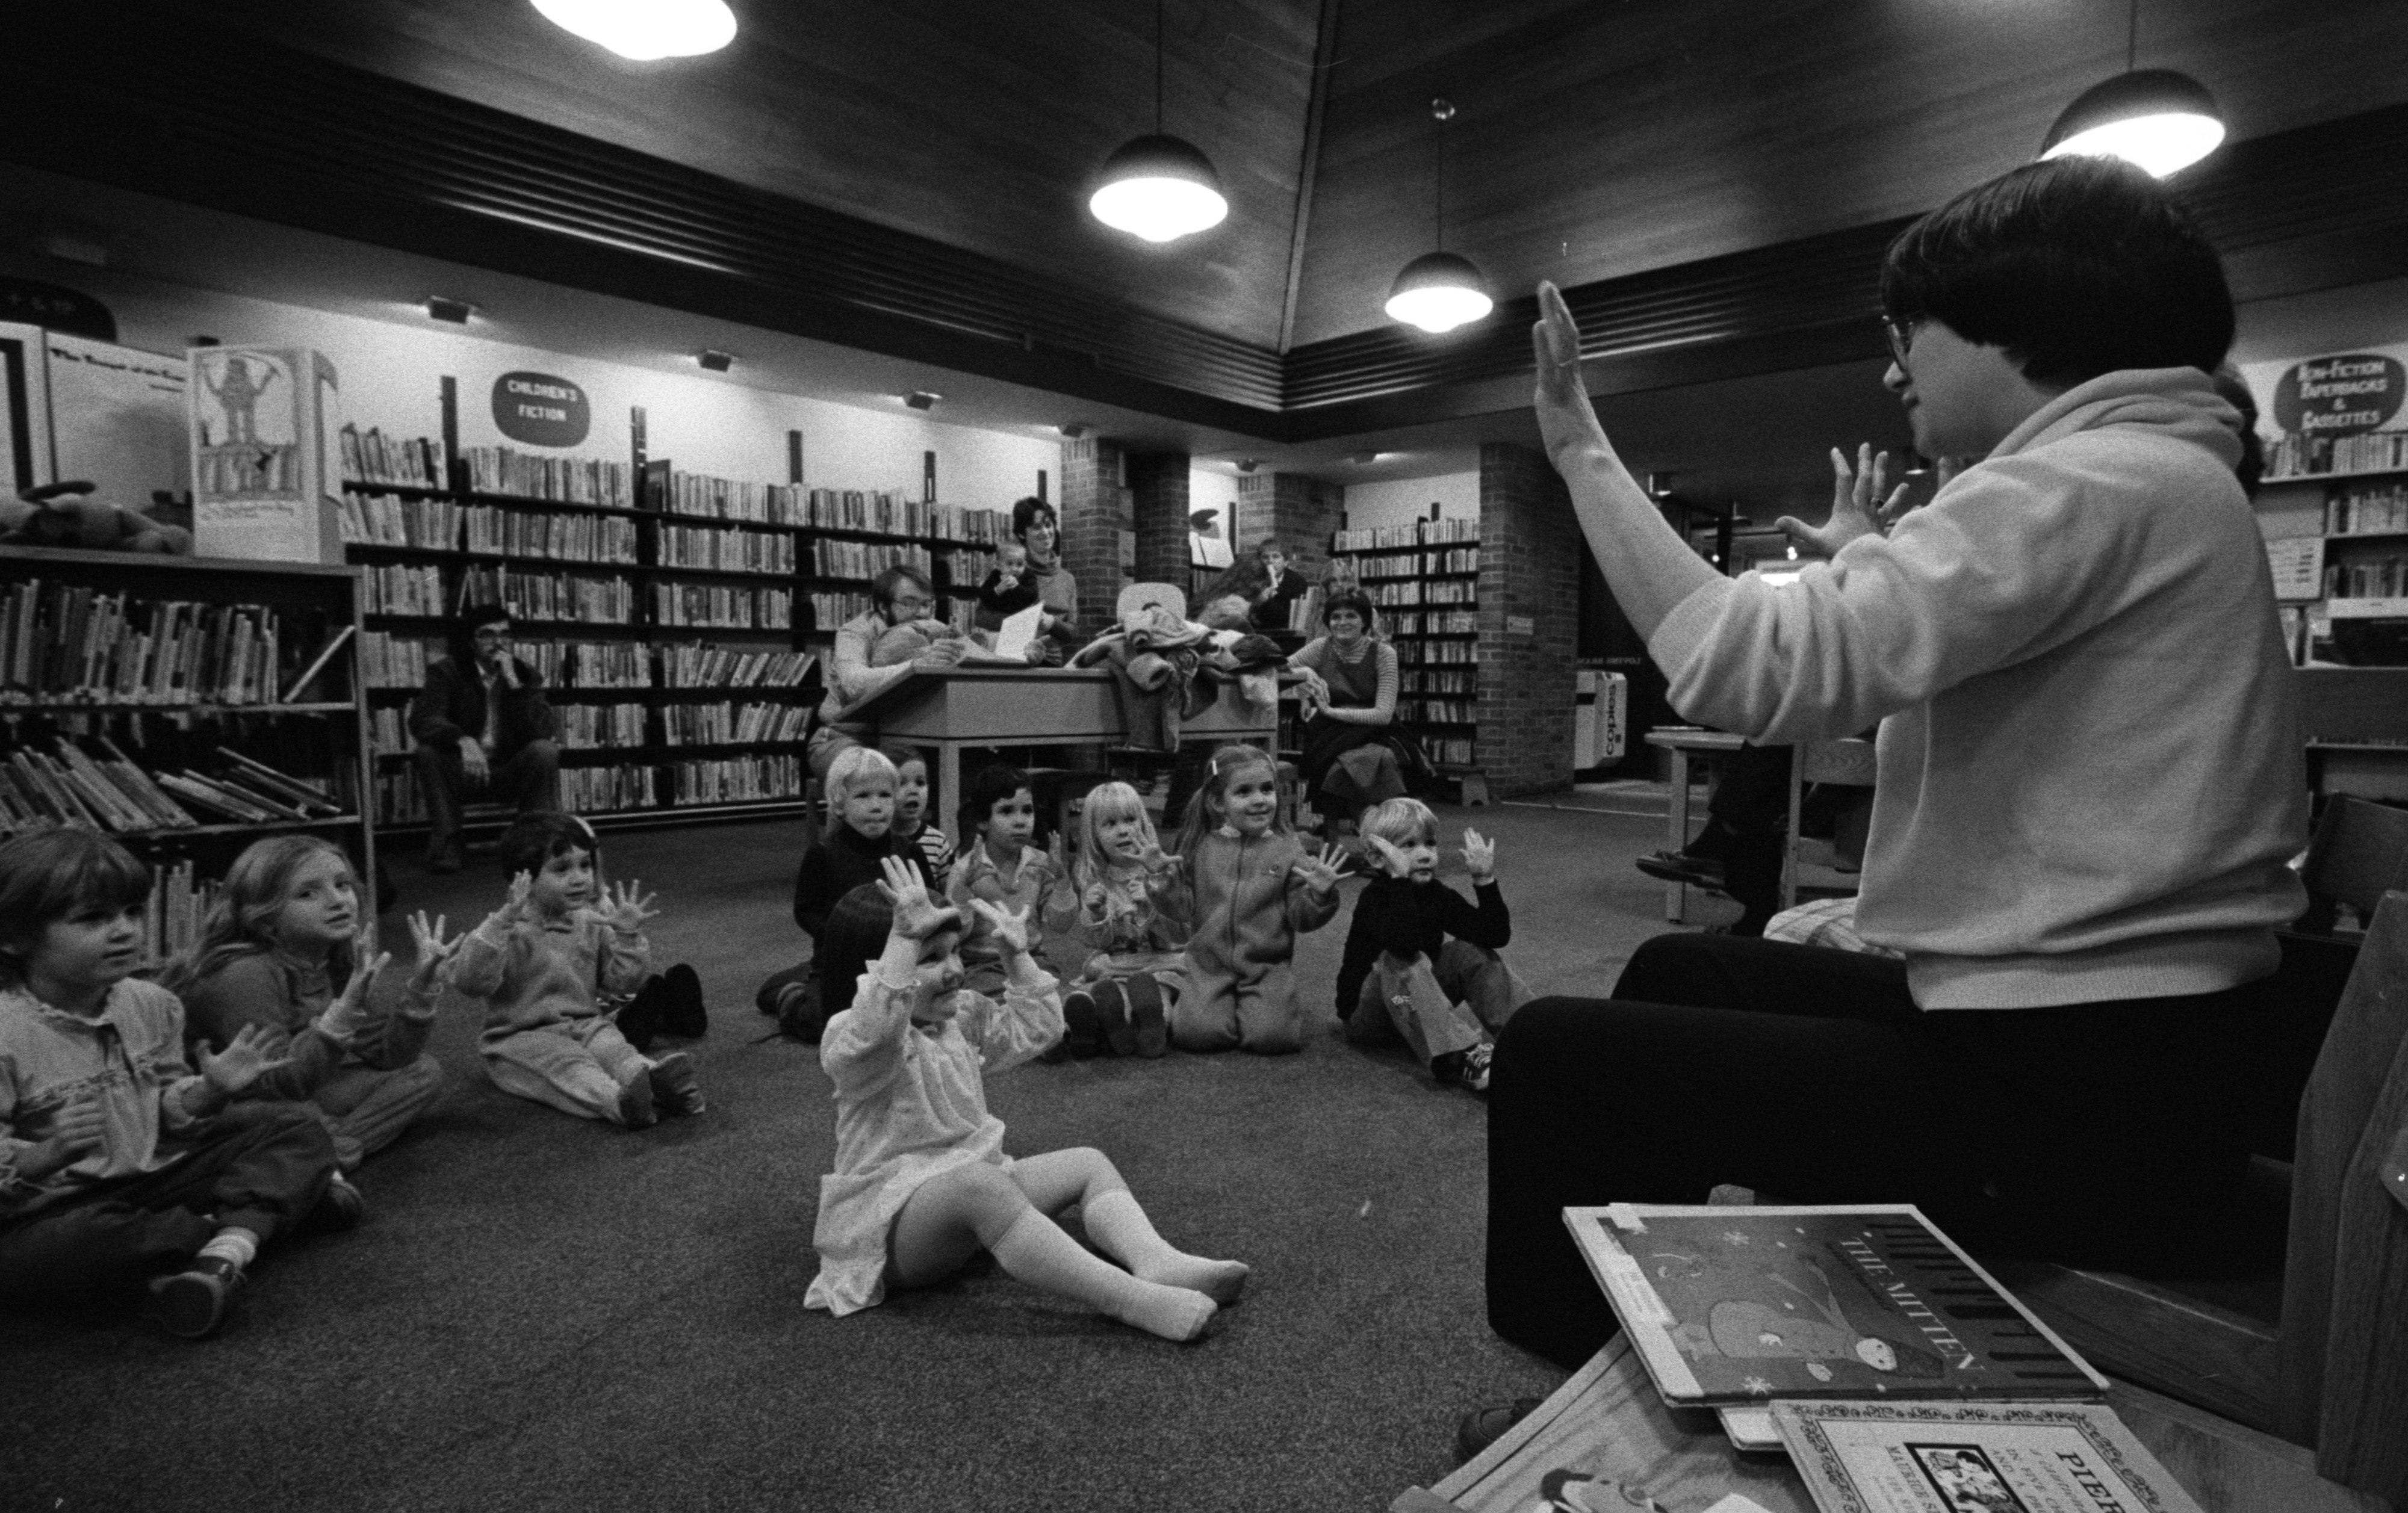 Counting Fingers at Story Time at the Loving Branch Library, December 1982 image